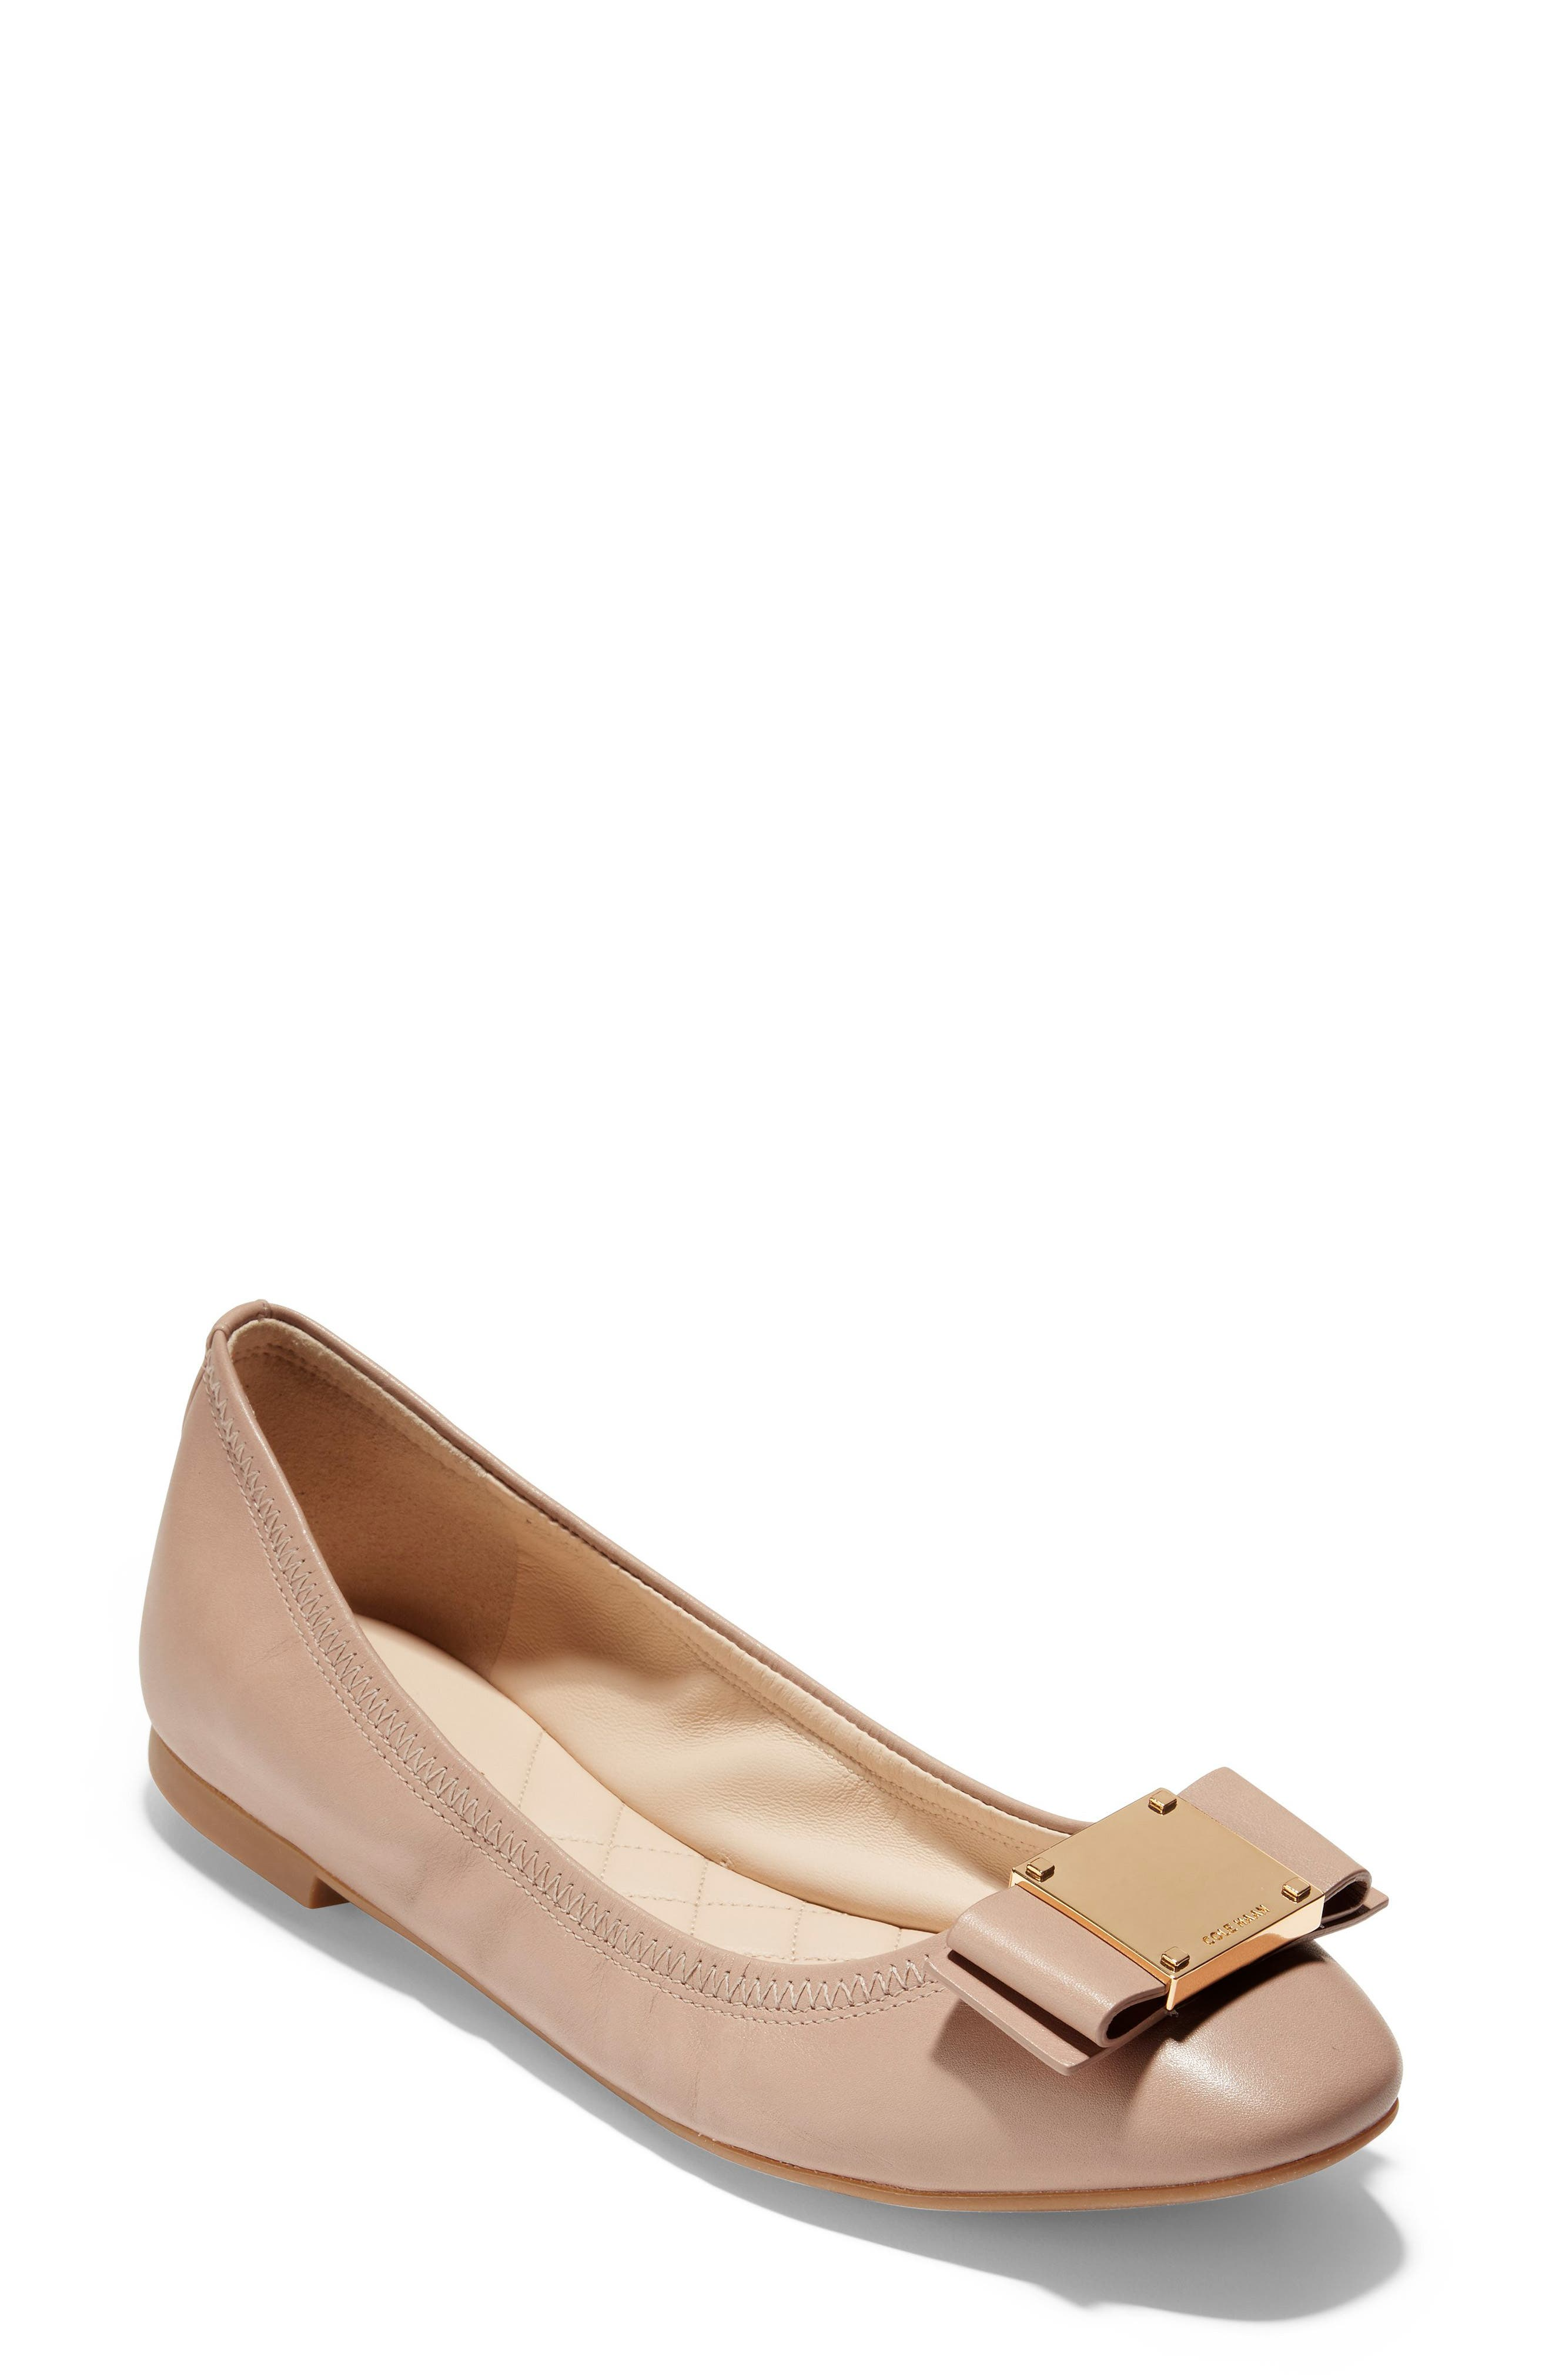 Tali Modern Bow Ballet Flat,                             Main thumbnail 1, color,                             Nude Leather